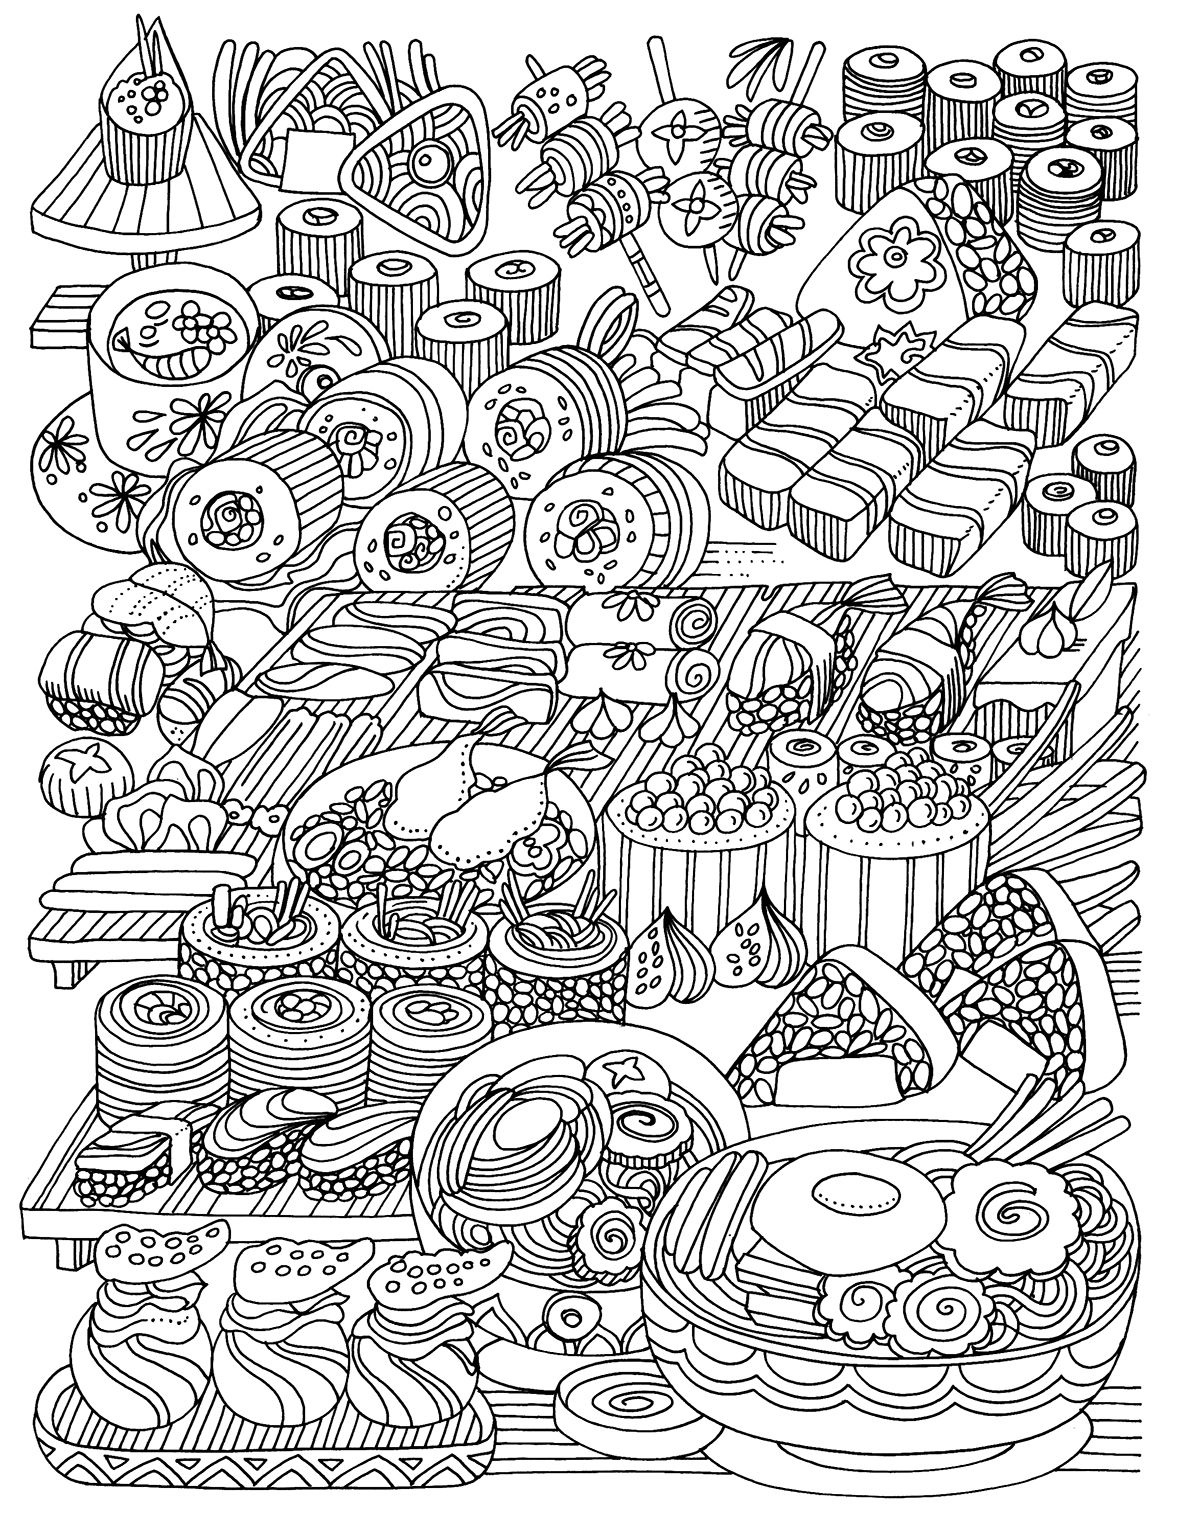 - Relaxing Colouring Books. Mandalas On Behance Coloring Pages